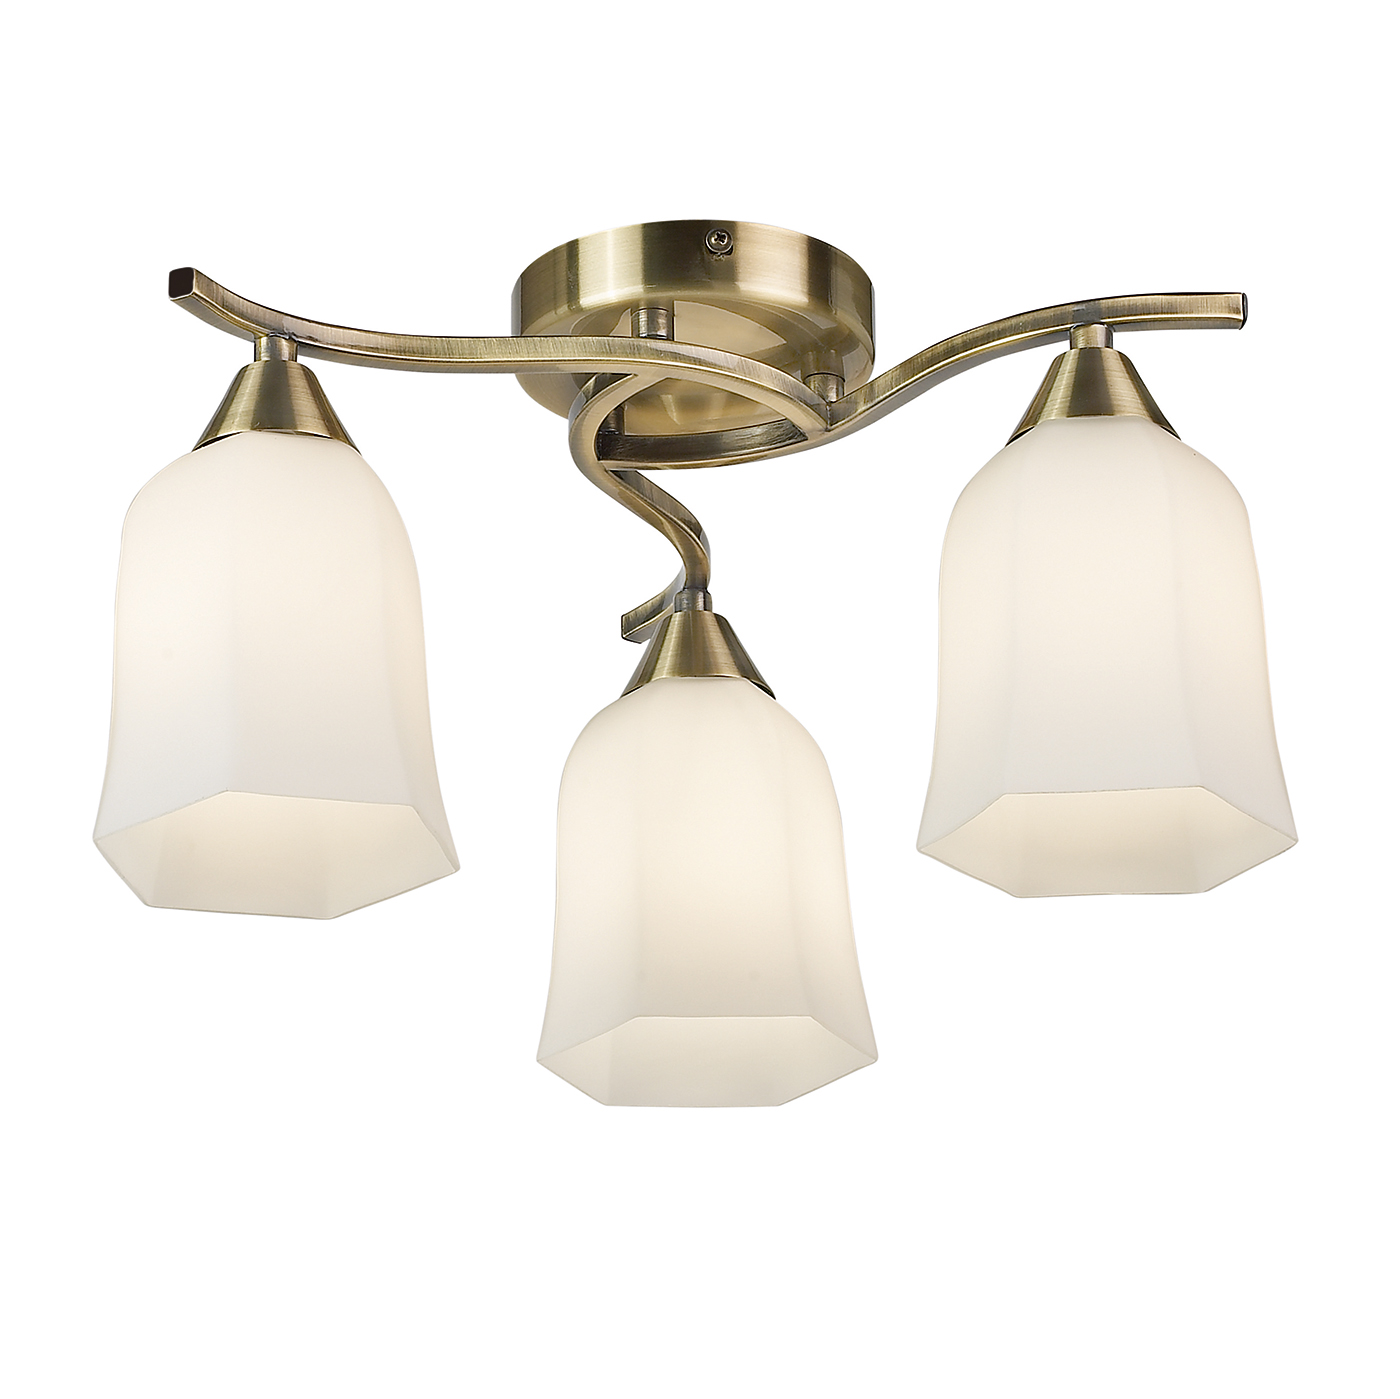 Endon Alonso ceiling light 3x 40W Antique brass effect plate & matt opal glass